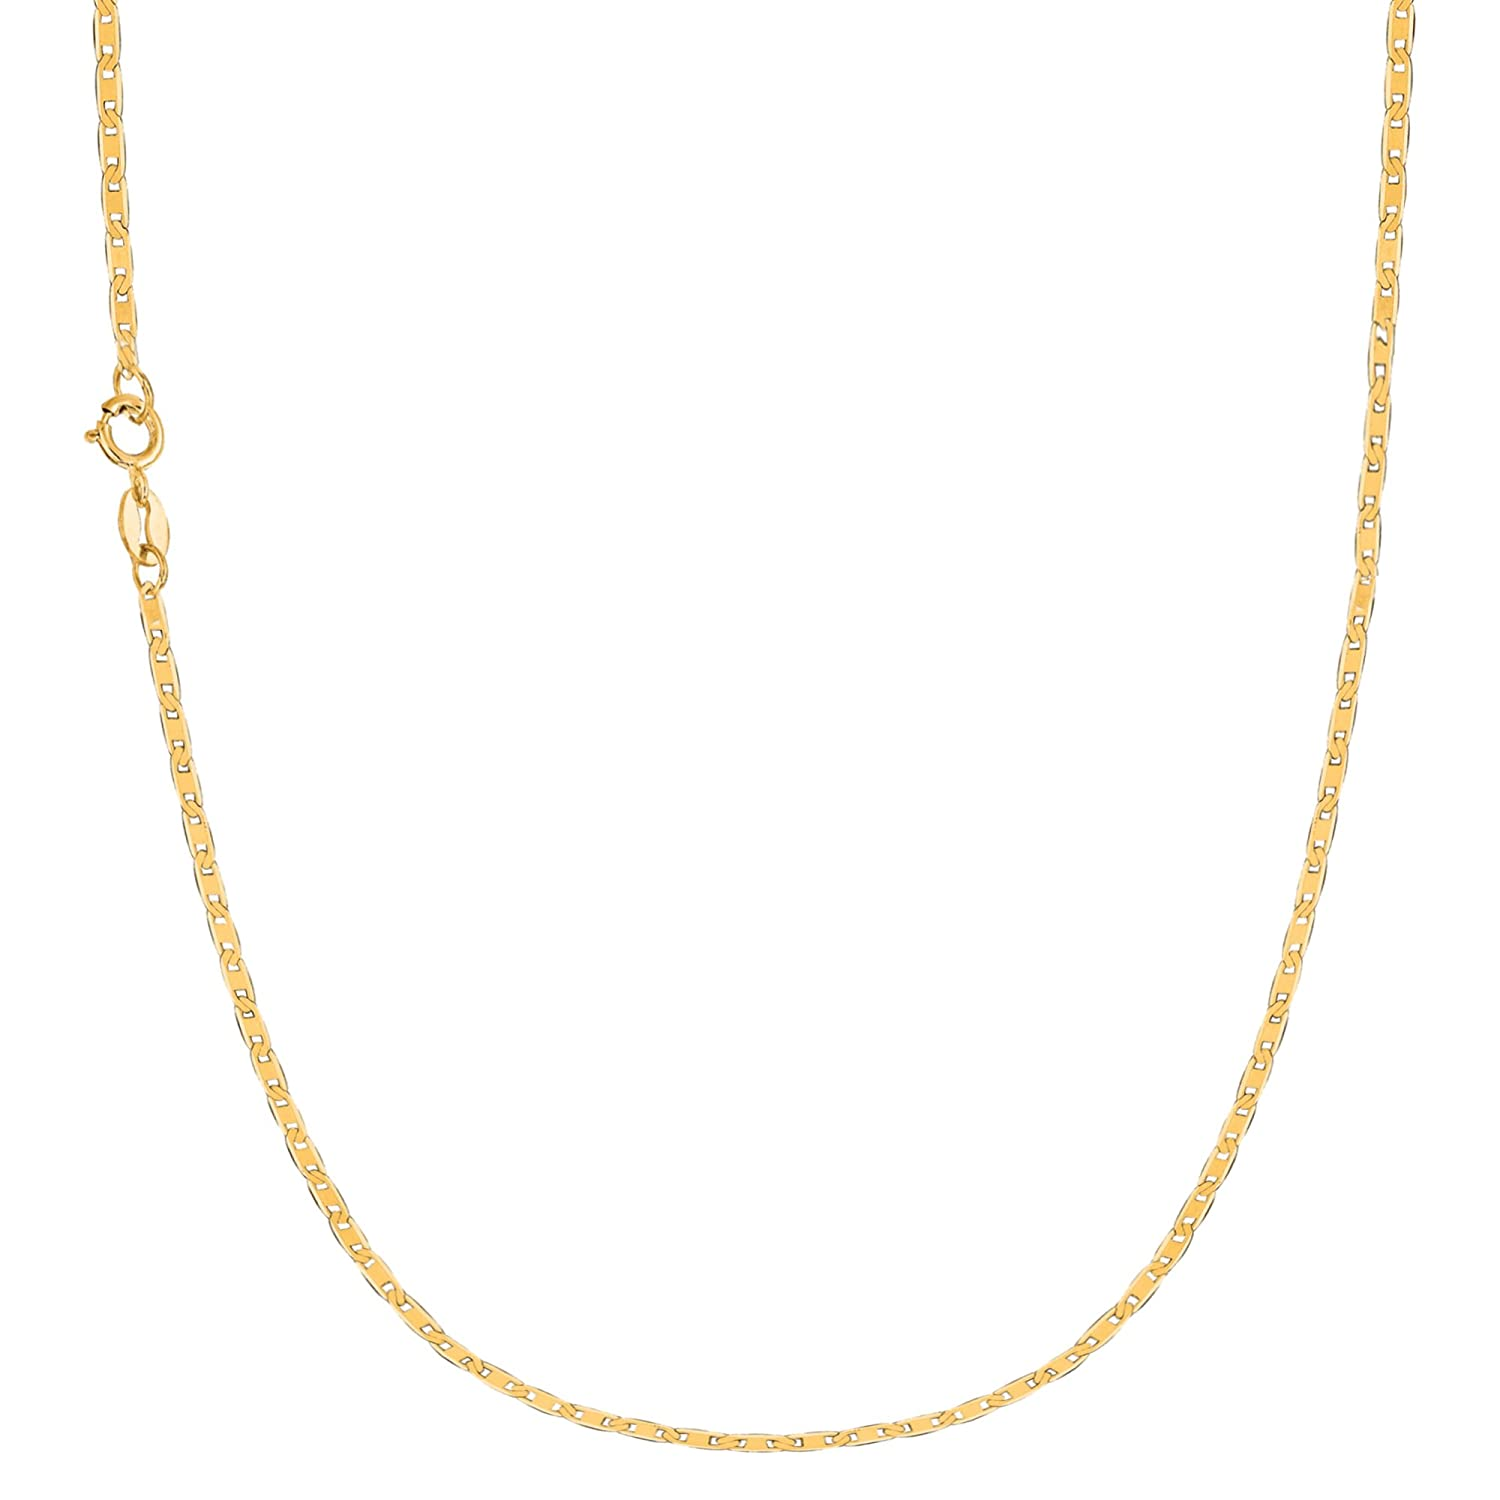 10k Solid Yellow Gold Mariner Link Chain (Bracelet, Anklet, or Necklace) Ritastephens